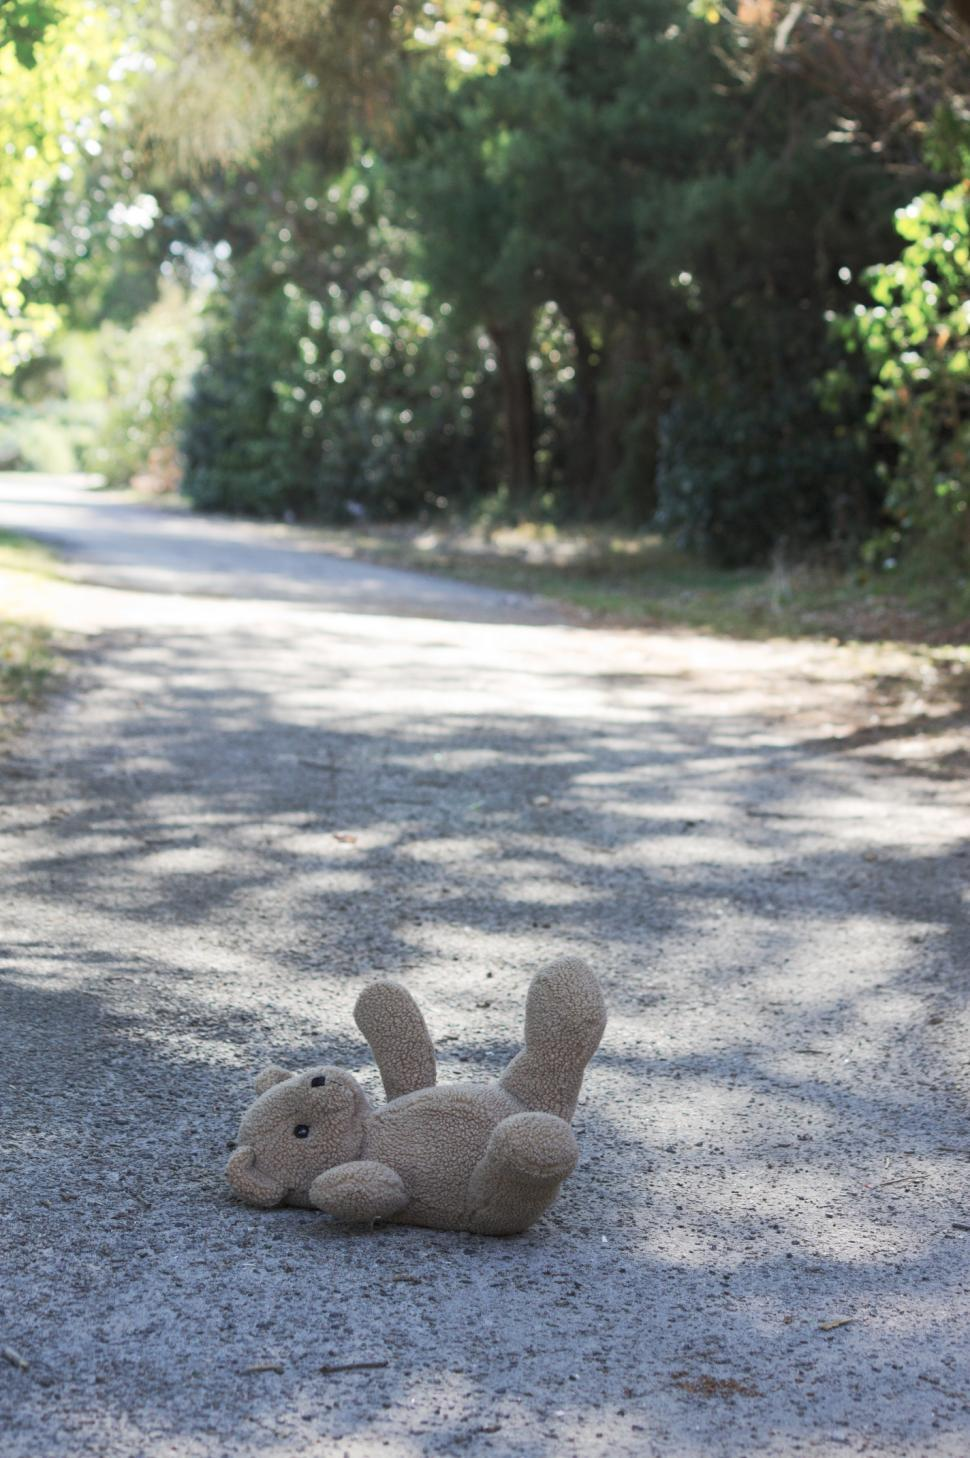 Download Free Stock HD Photo of Teddy bear on the ground Online